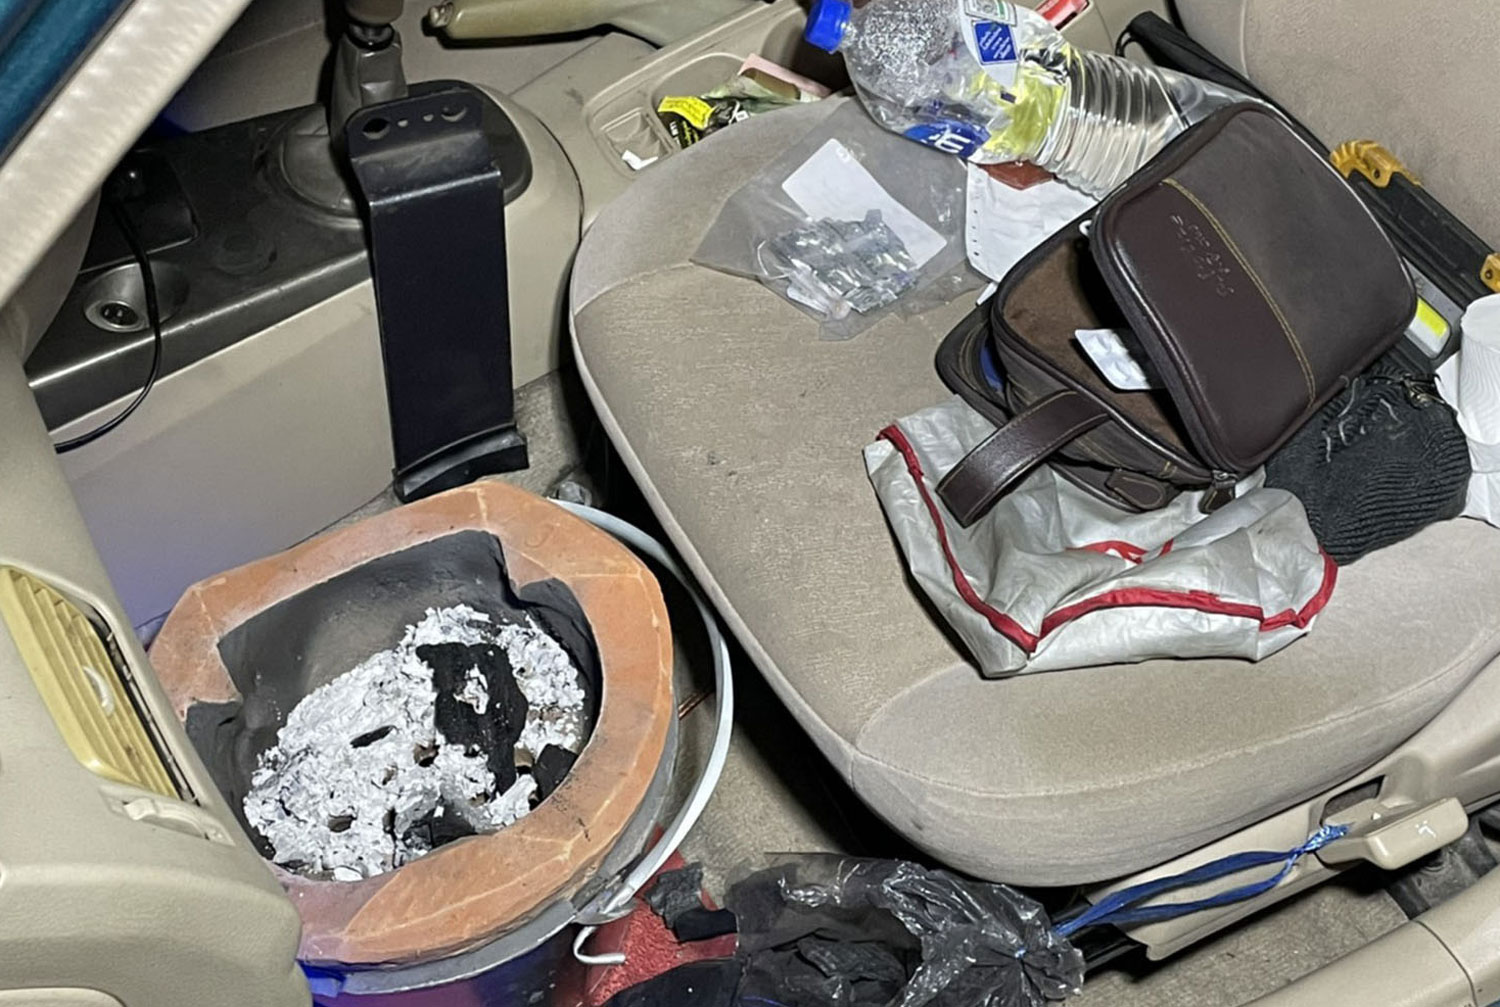 Man found dead in car with charcoal stove and ashes